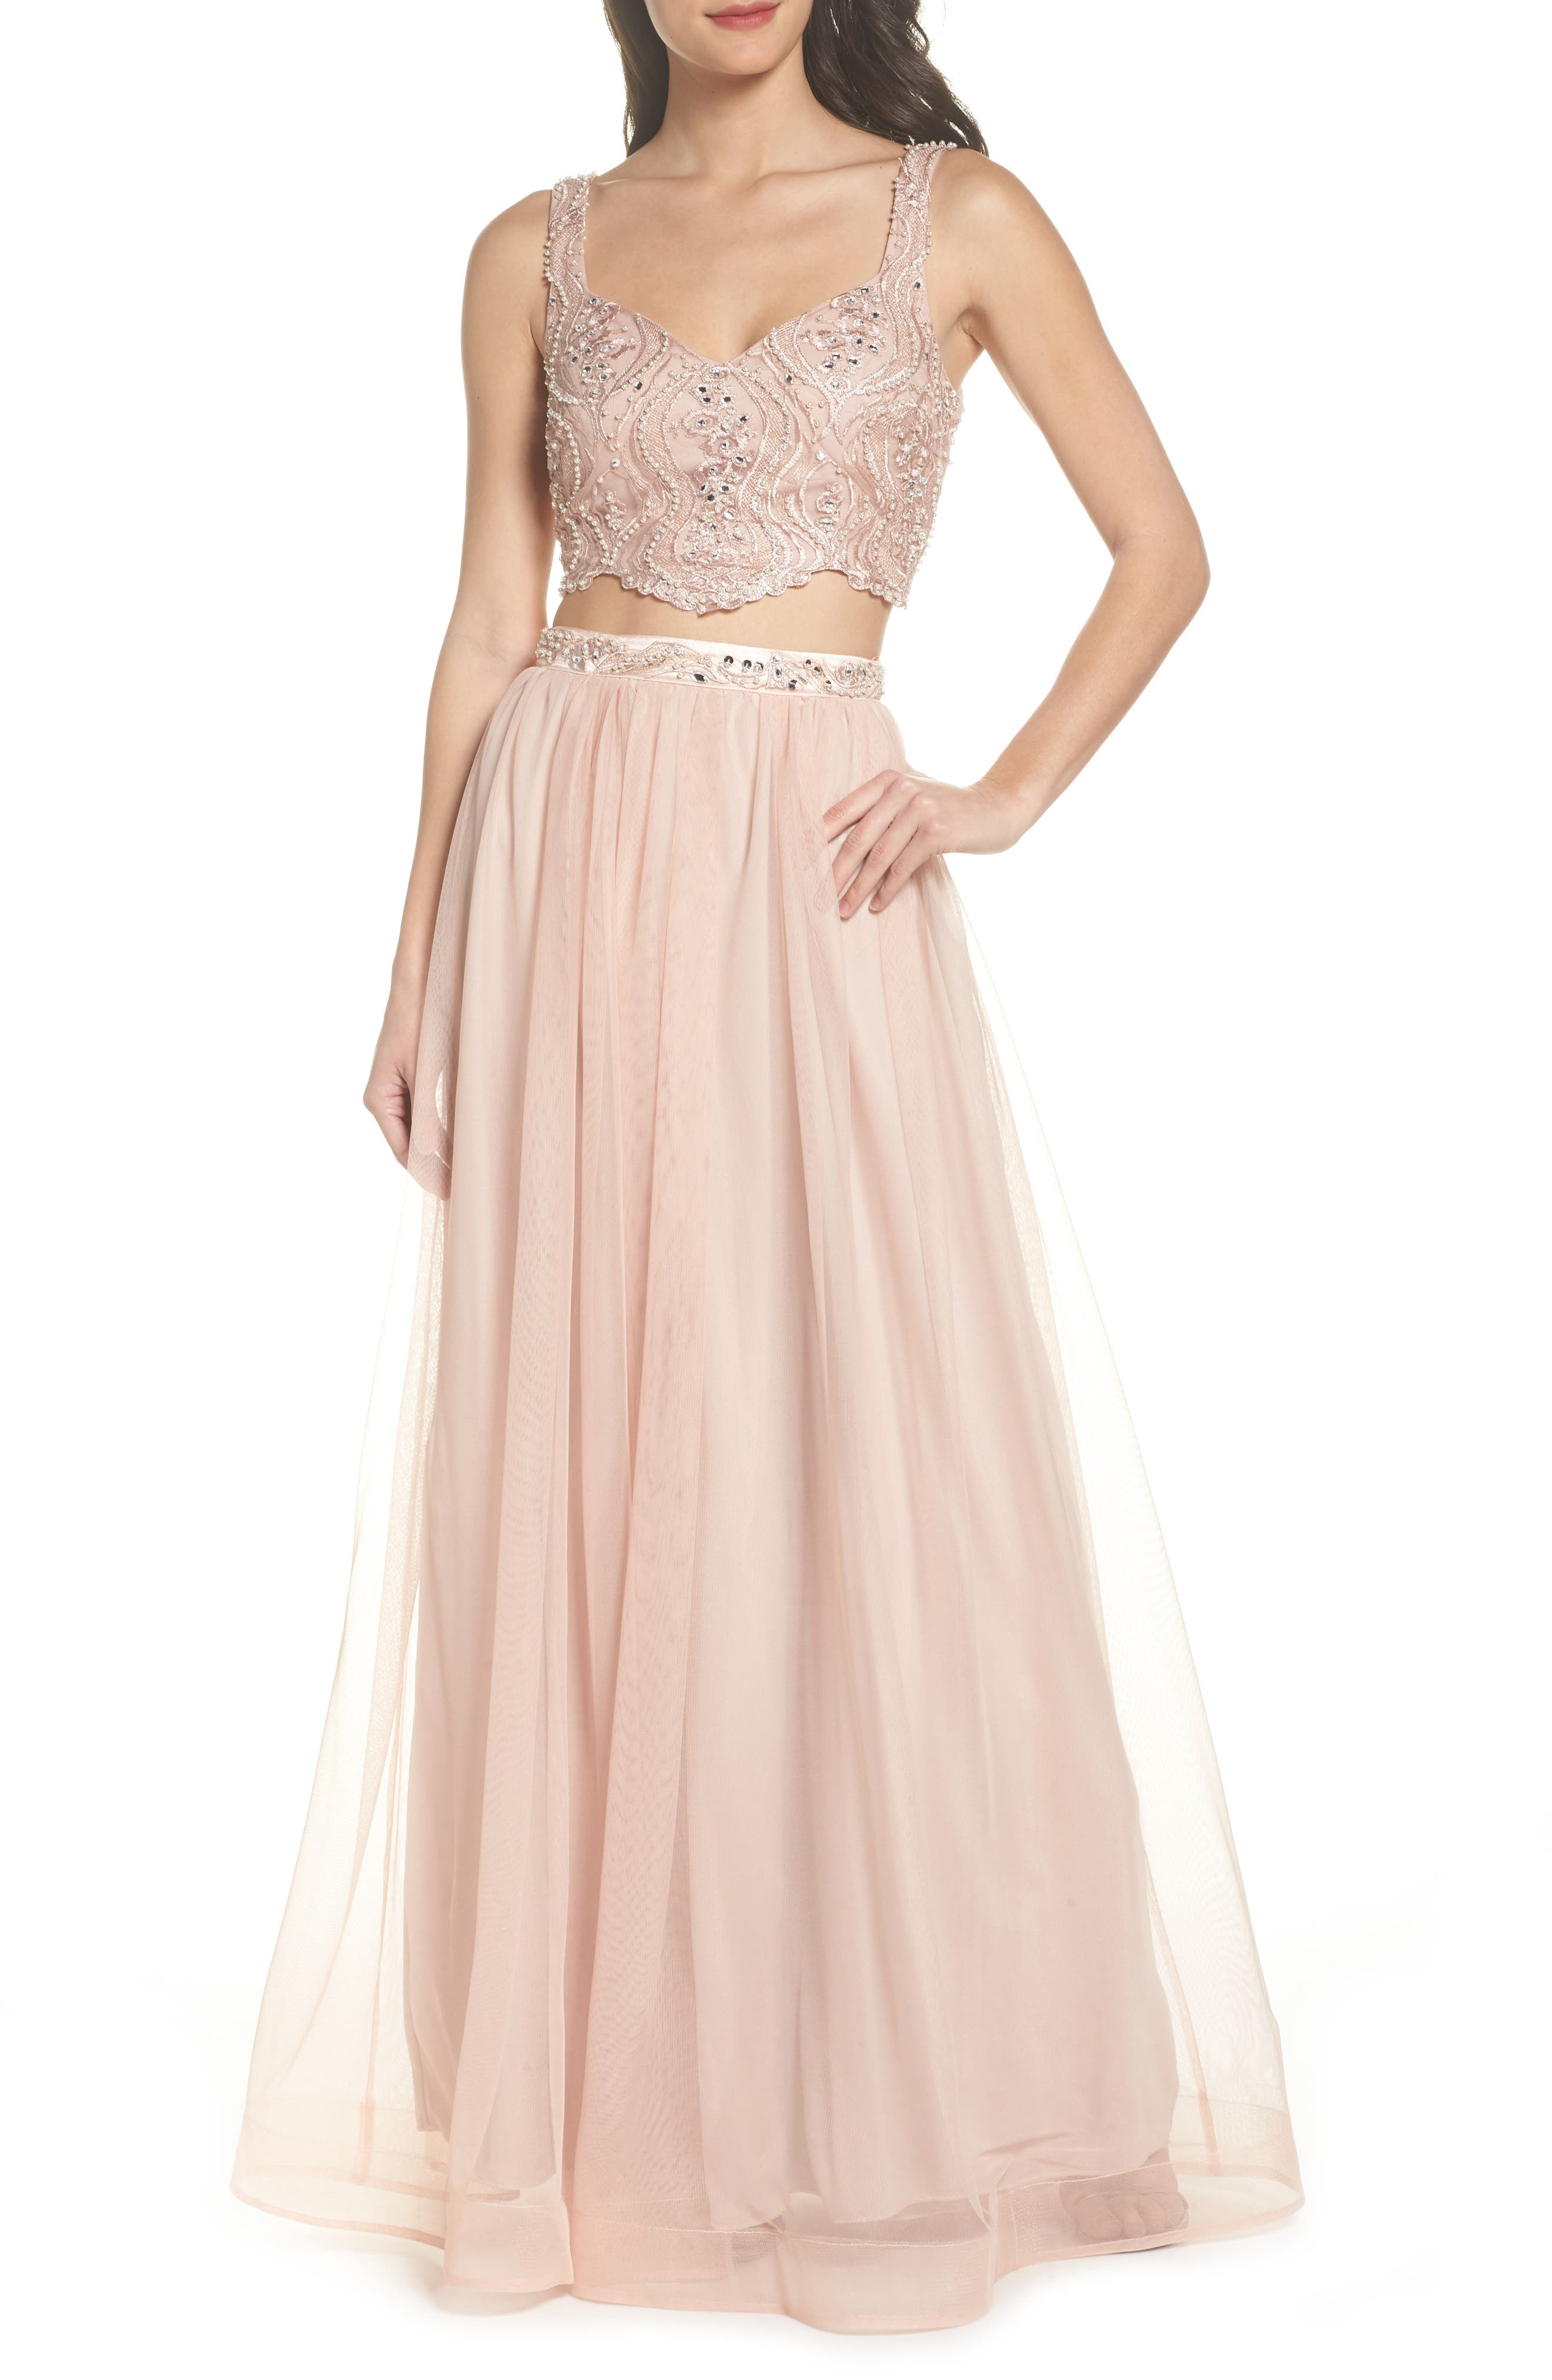 Sequin Hearts Beaded Lace Two-Piece Gown, Pink